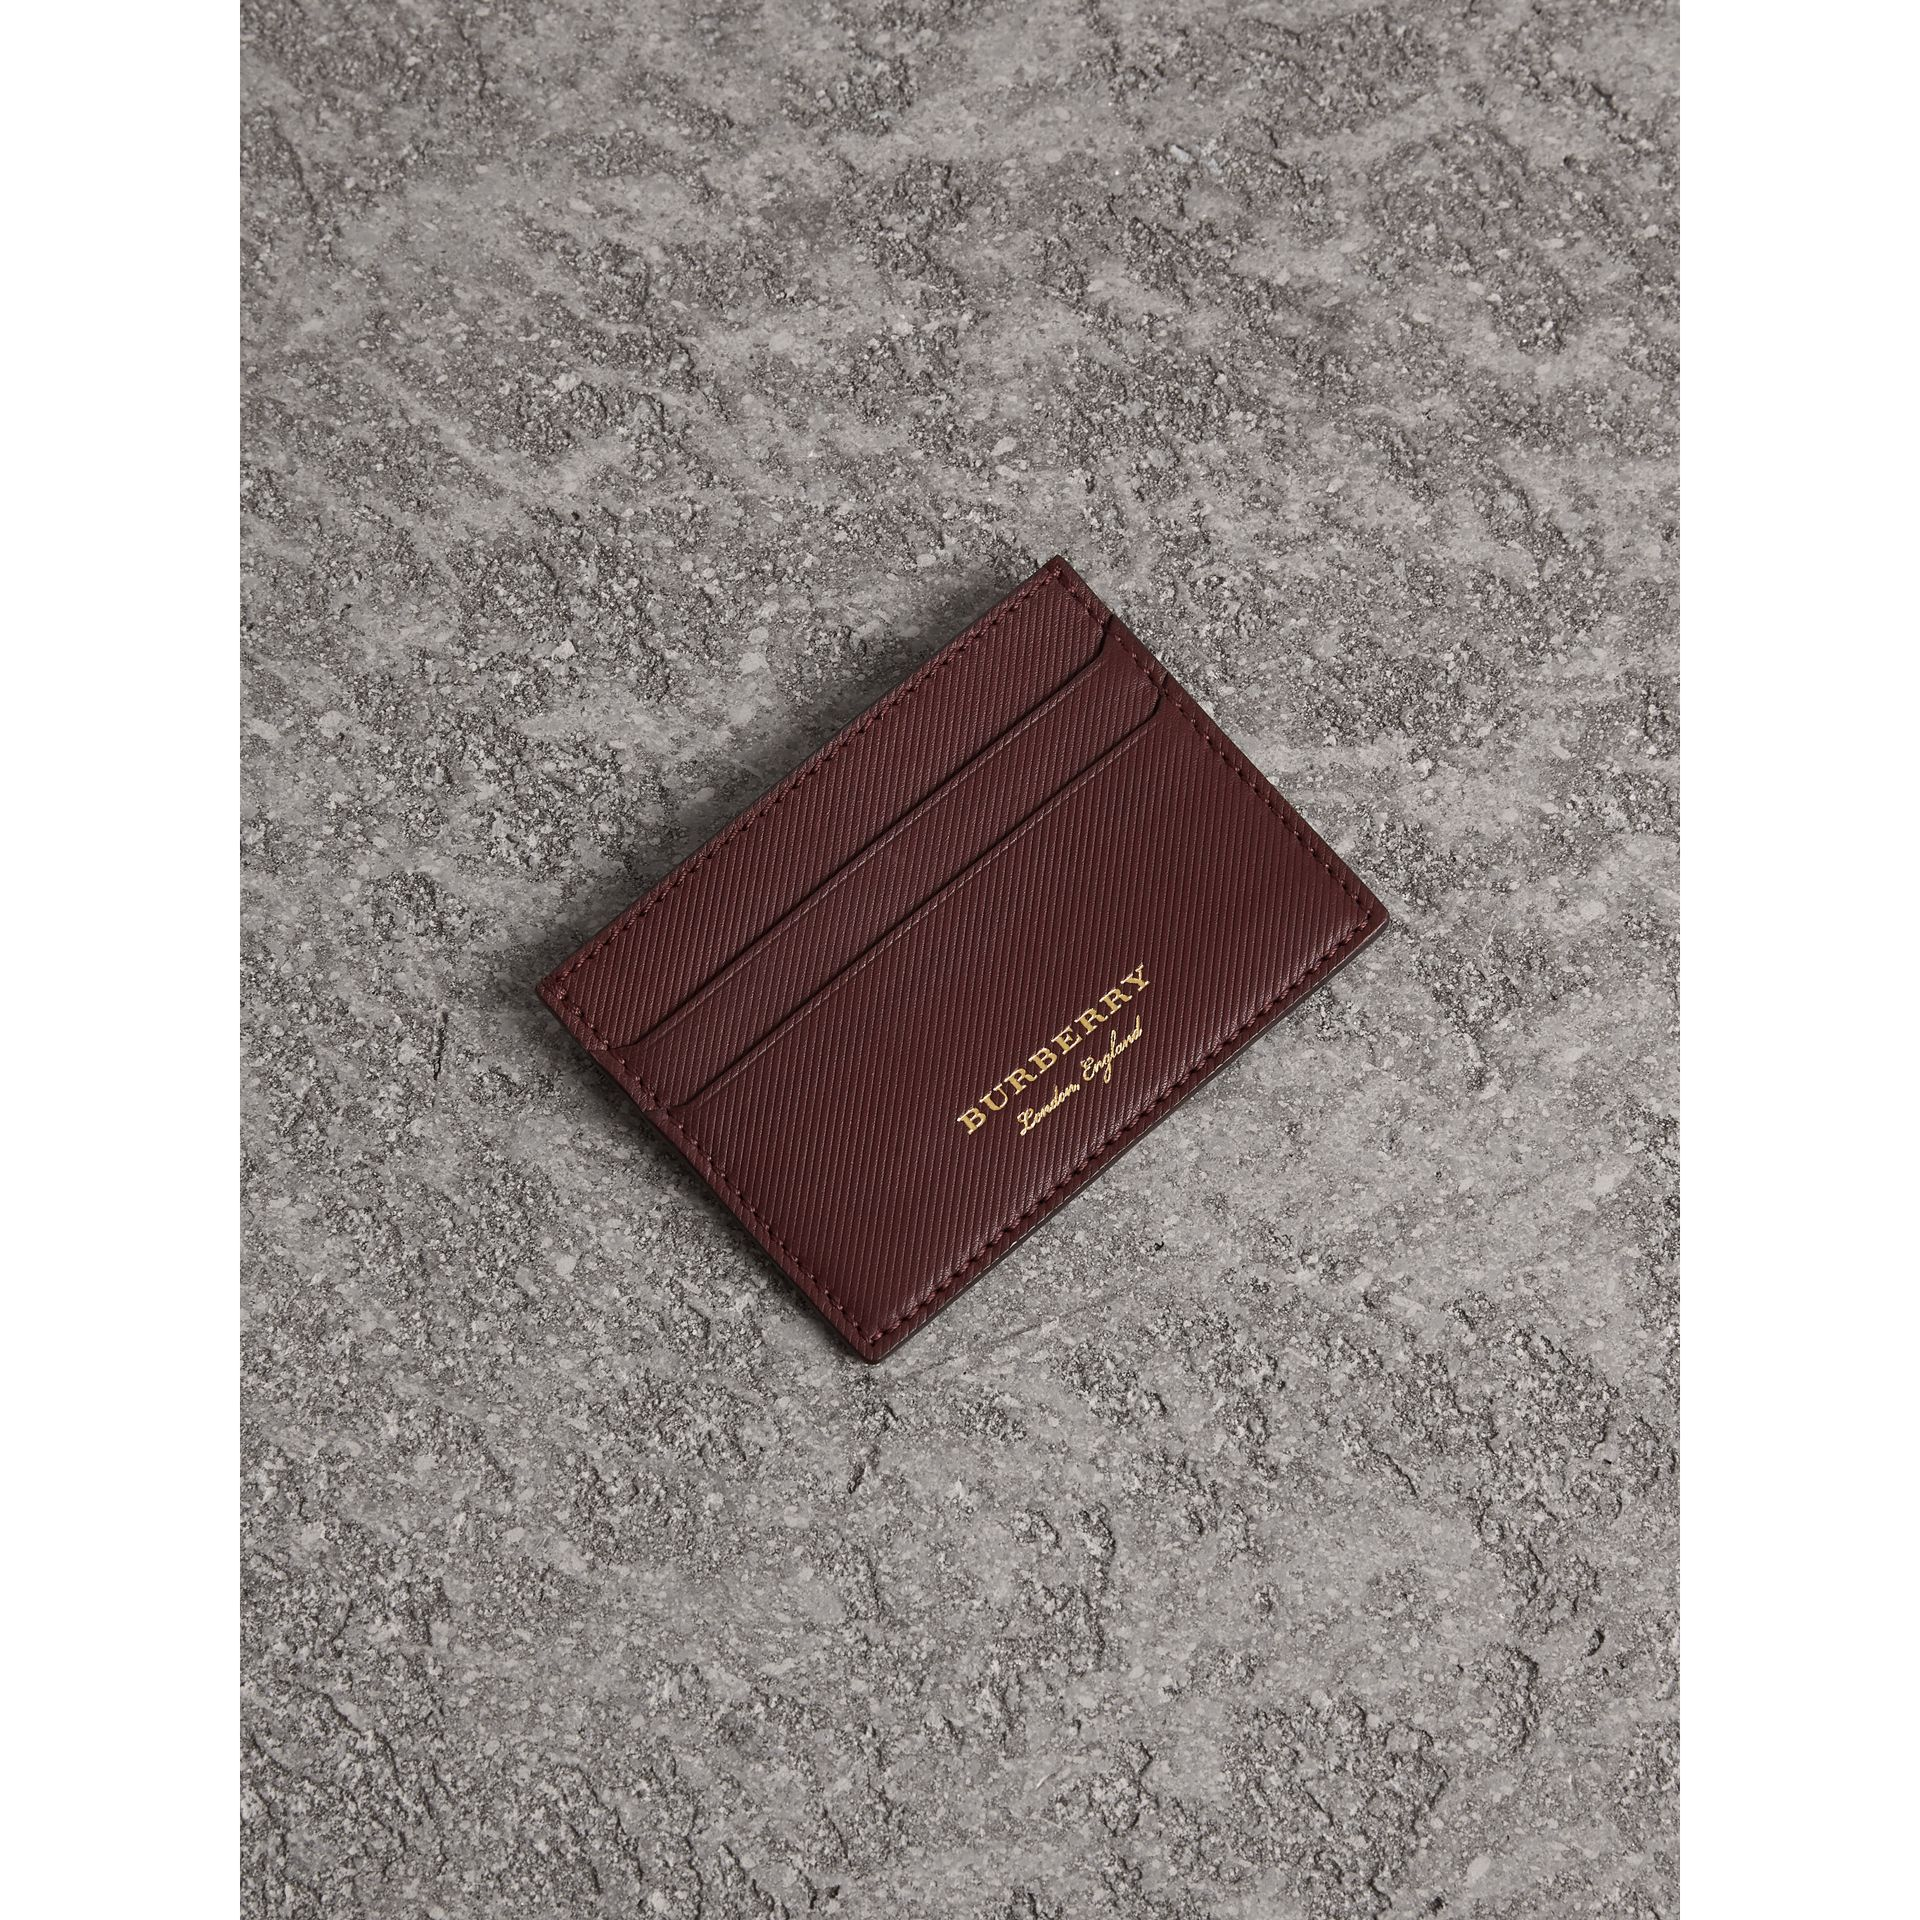 Trench Leather Card Case in Wine - Men | Burberry Canada - gallery image 1